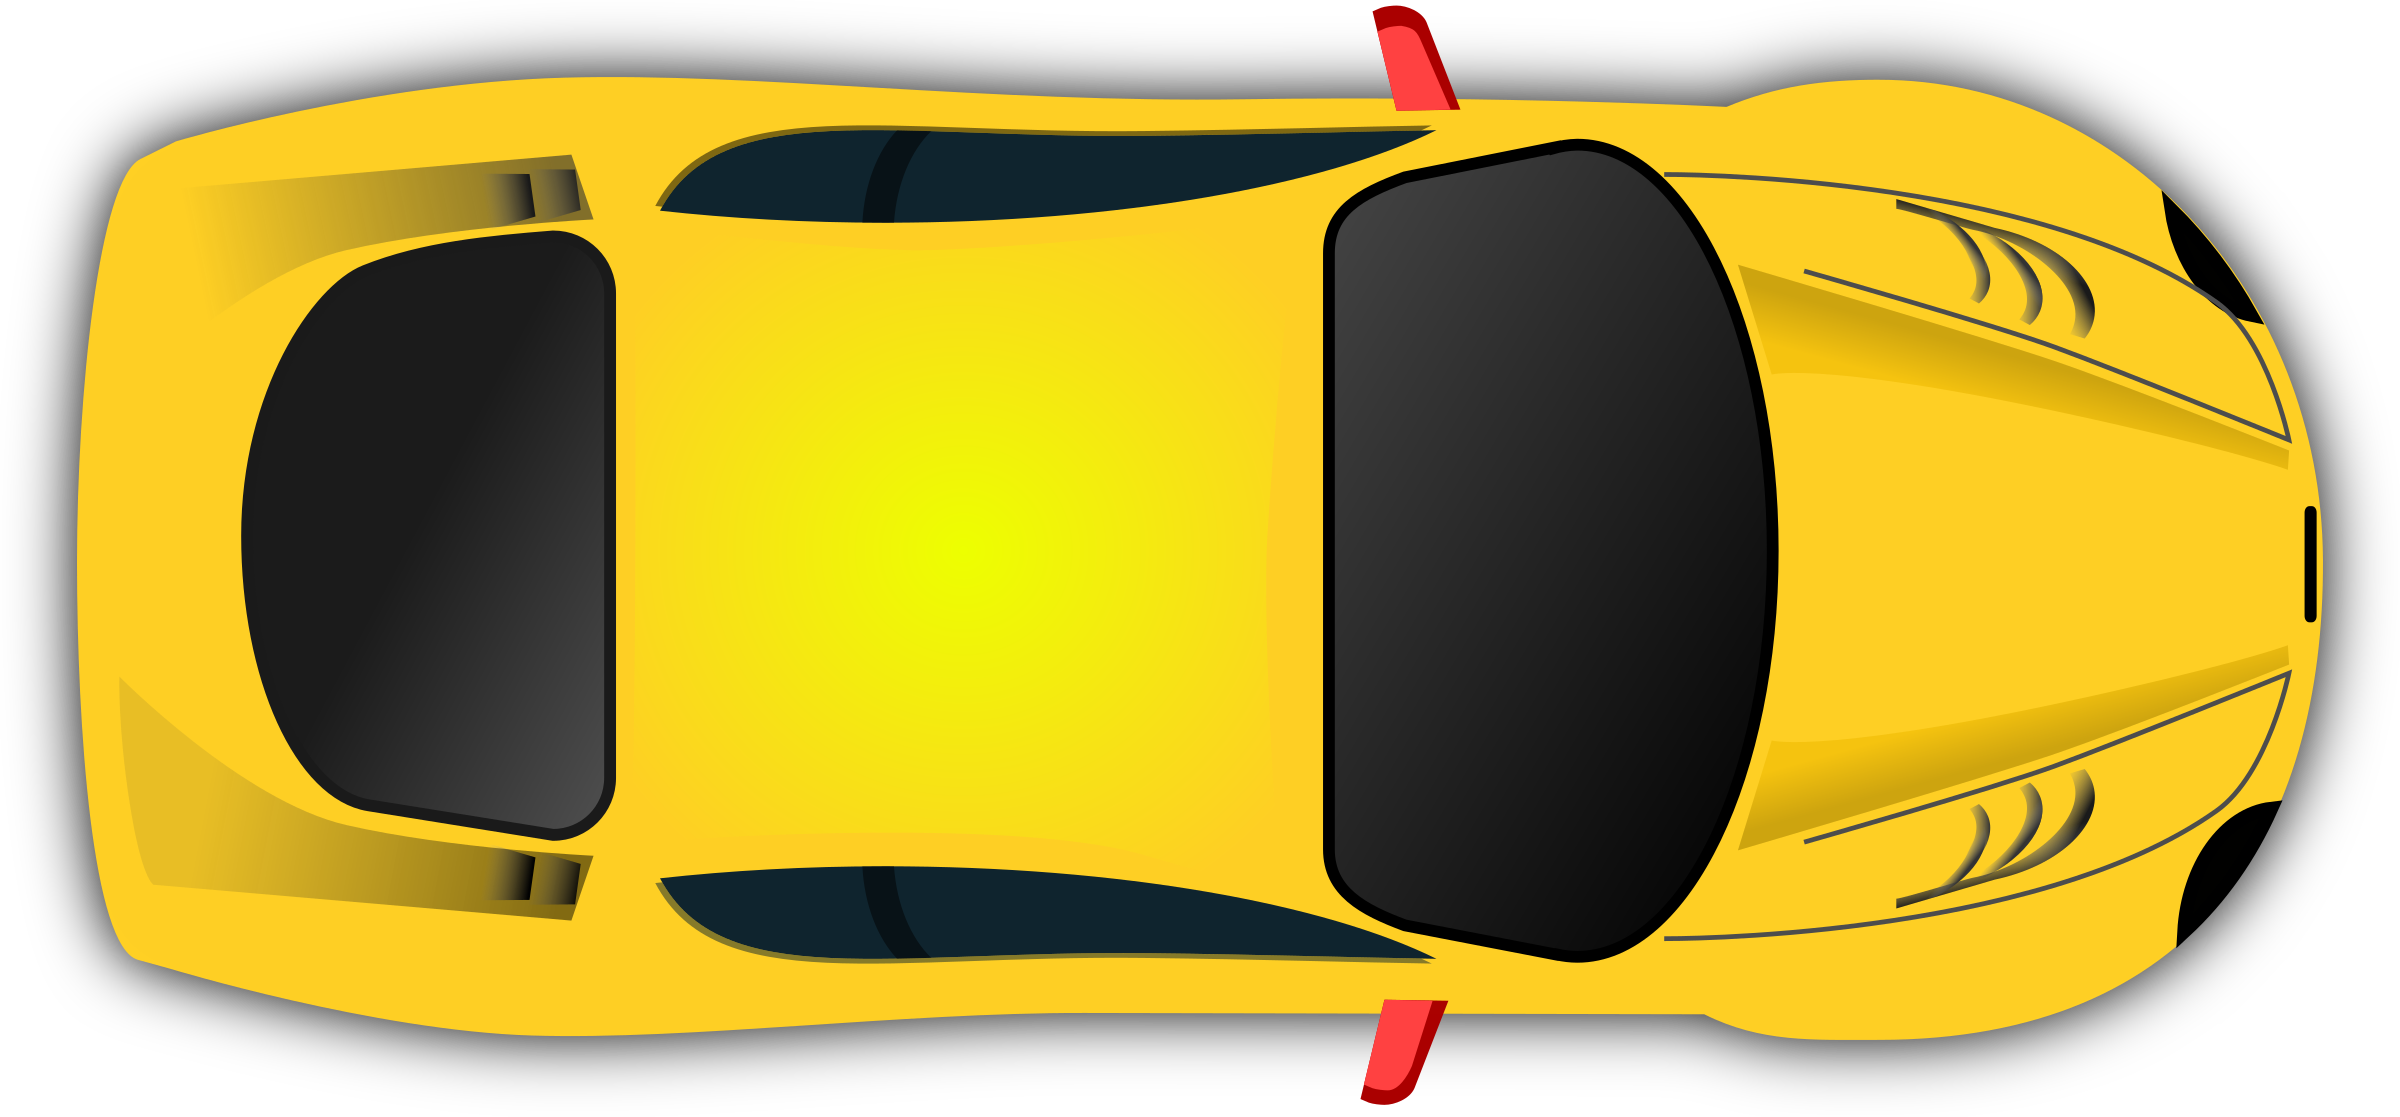 Car Top view remix racing game by monsterbraingames